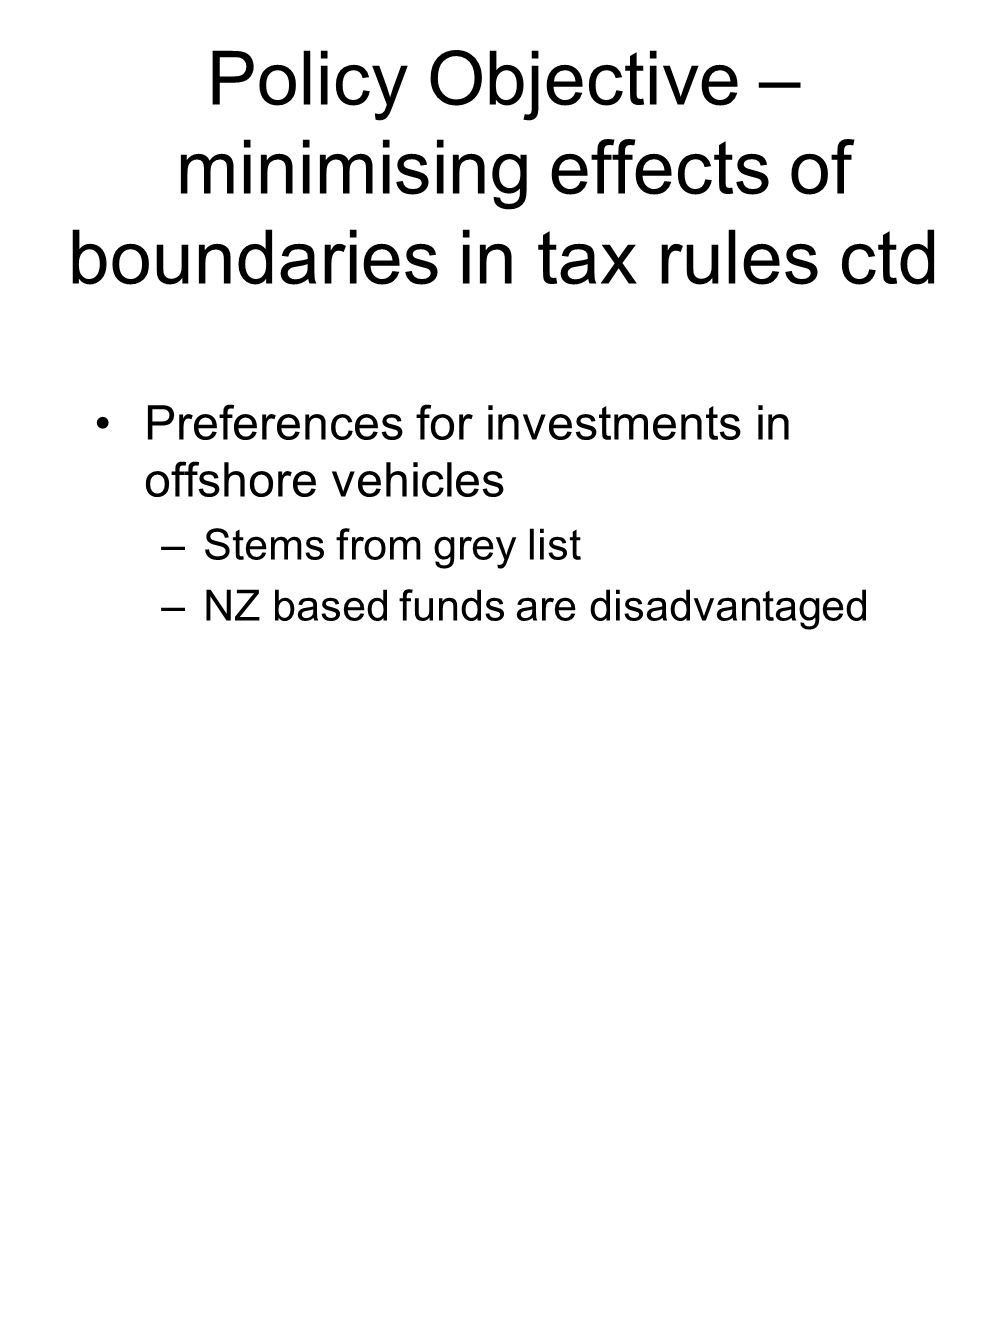 Policy Objective – minimising effects of boundaries in tax rules ctd Preferences for investments in offshore vehicles –Stems from grey list –NZ based funds are disadvantaged